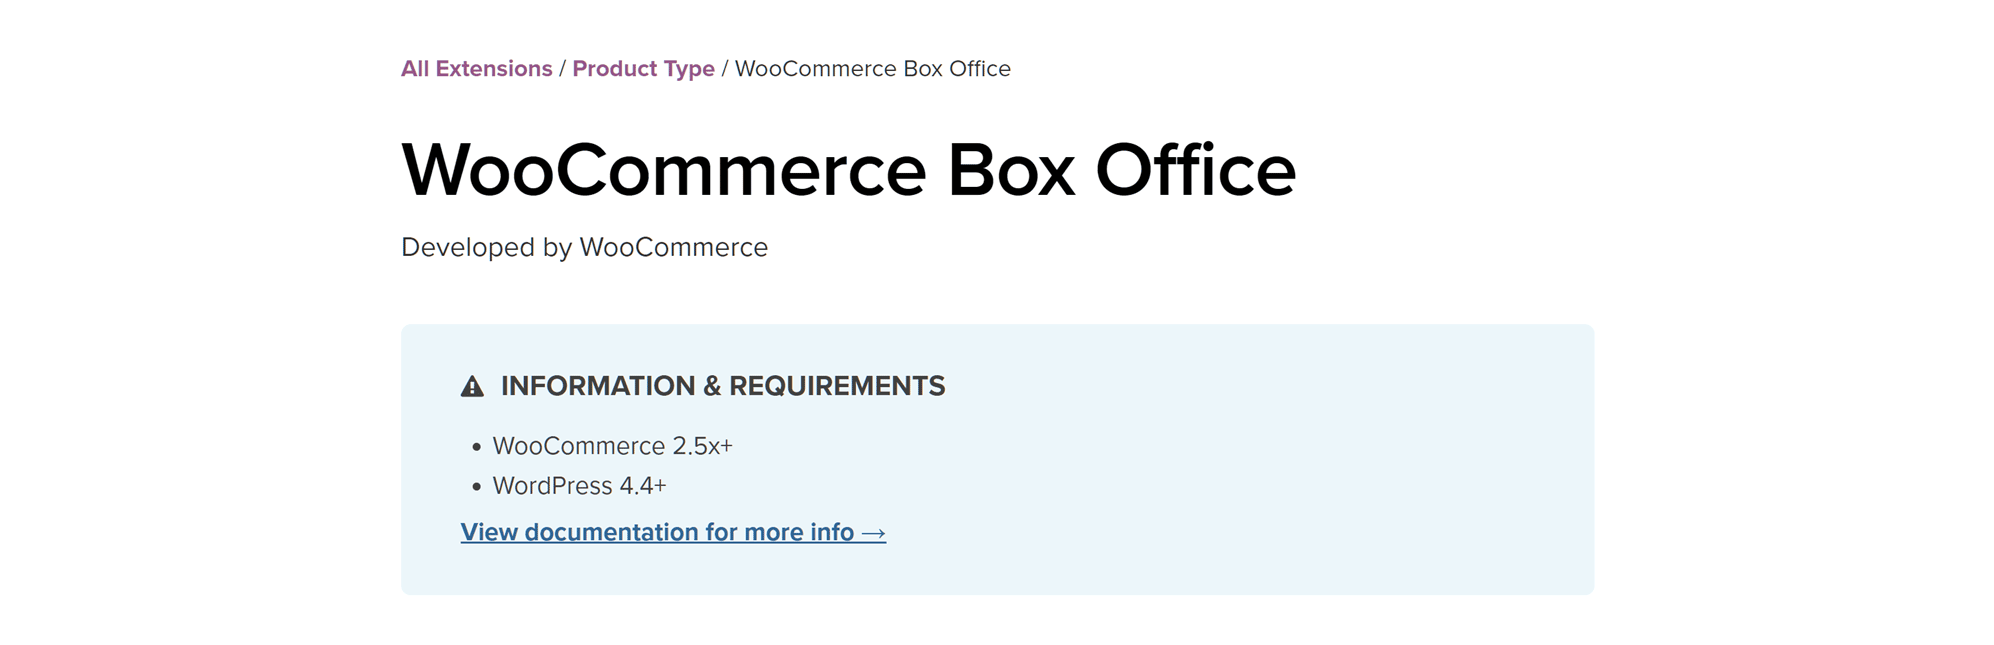 Selling Tickets From Your WordPress Website with WooCommerce Box Office